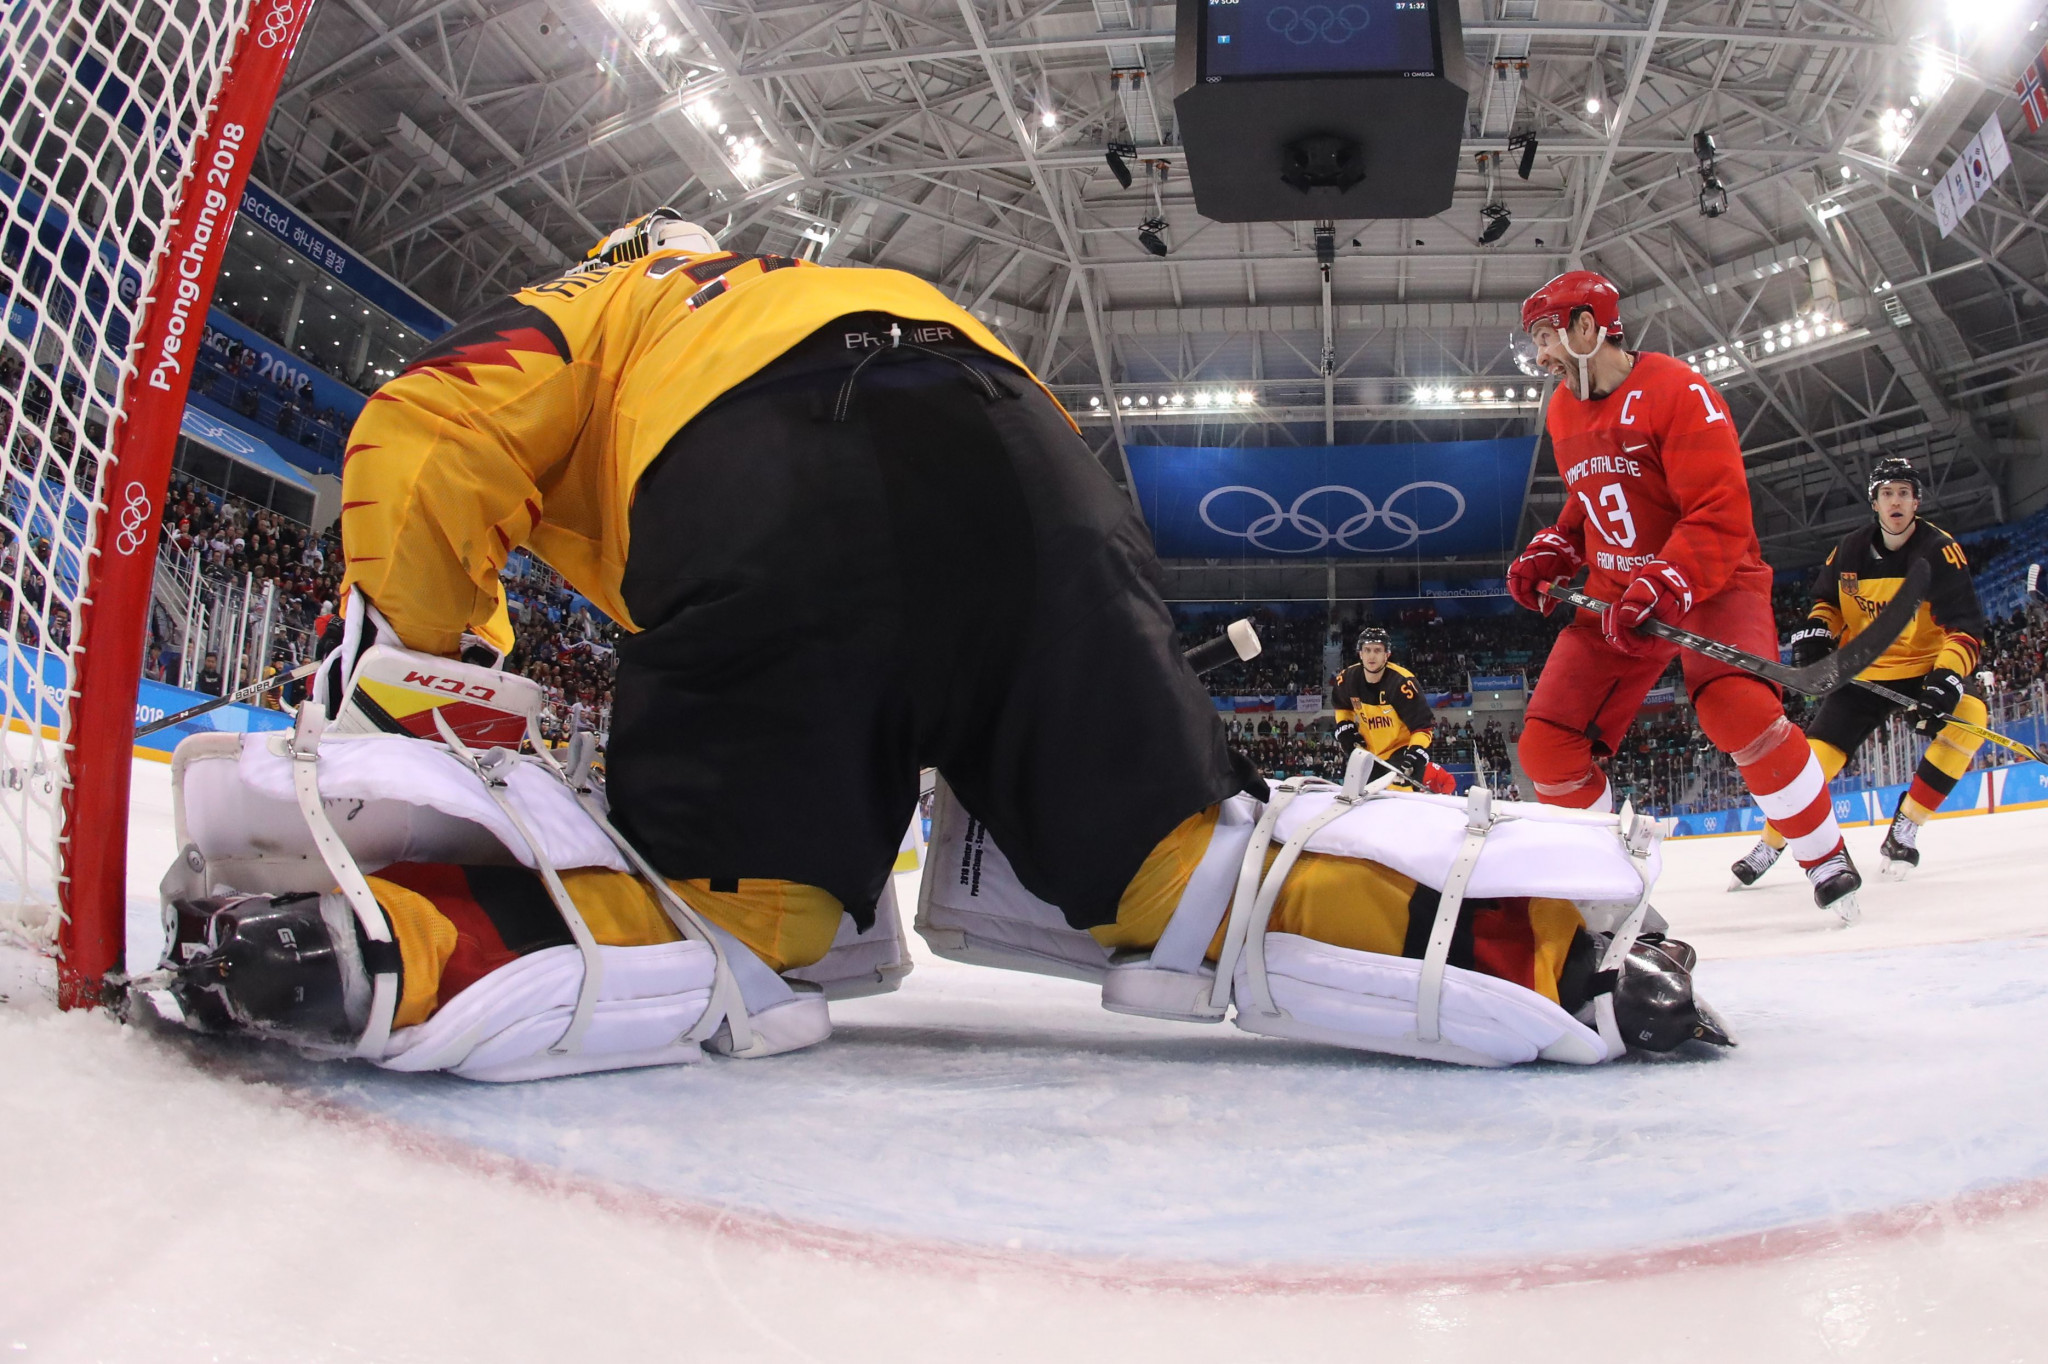 NHL players were unable to compete at the Pyeongchang 2018 Winter Olympic Games ©Getty Images